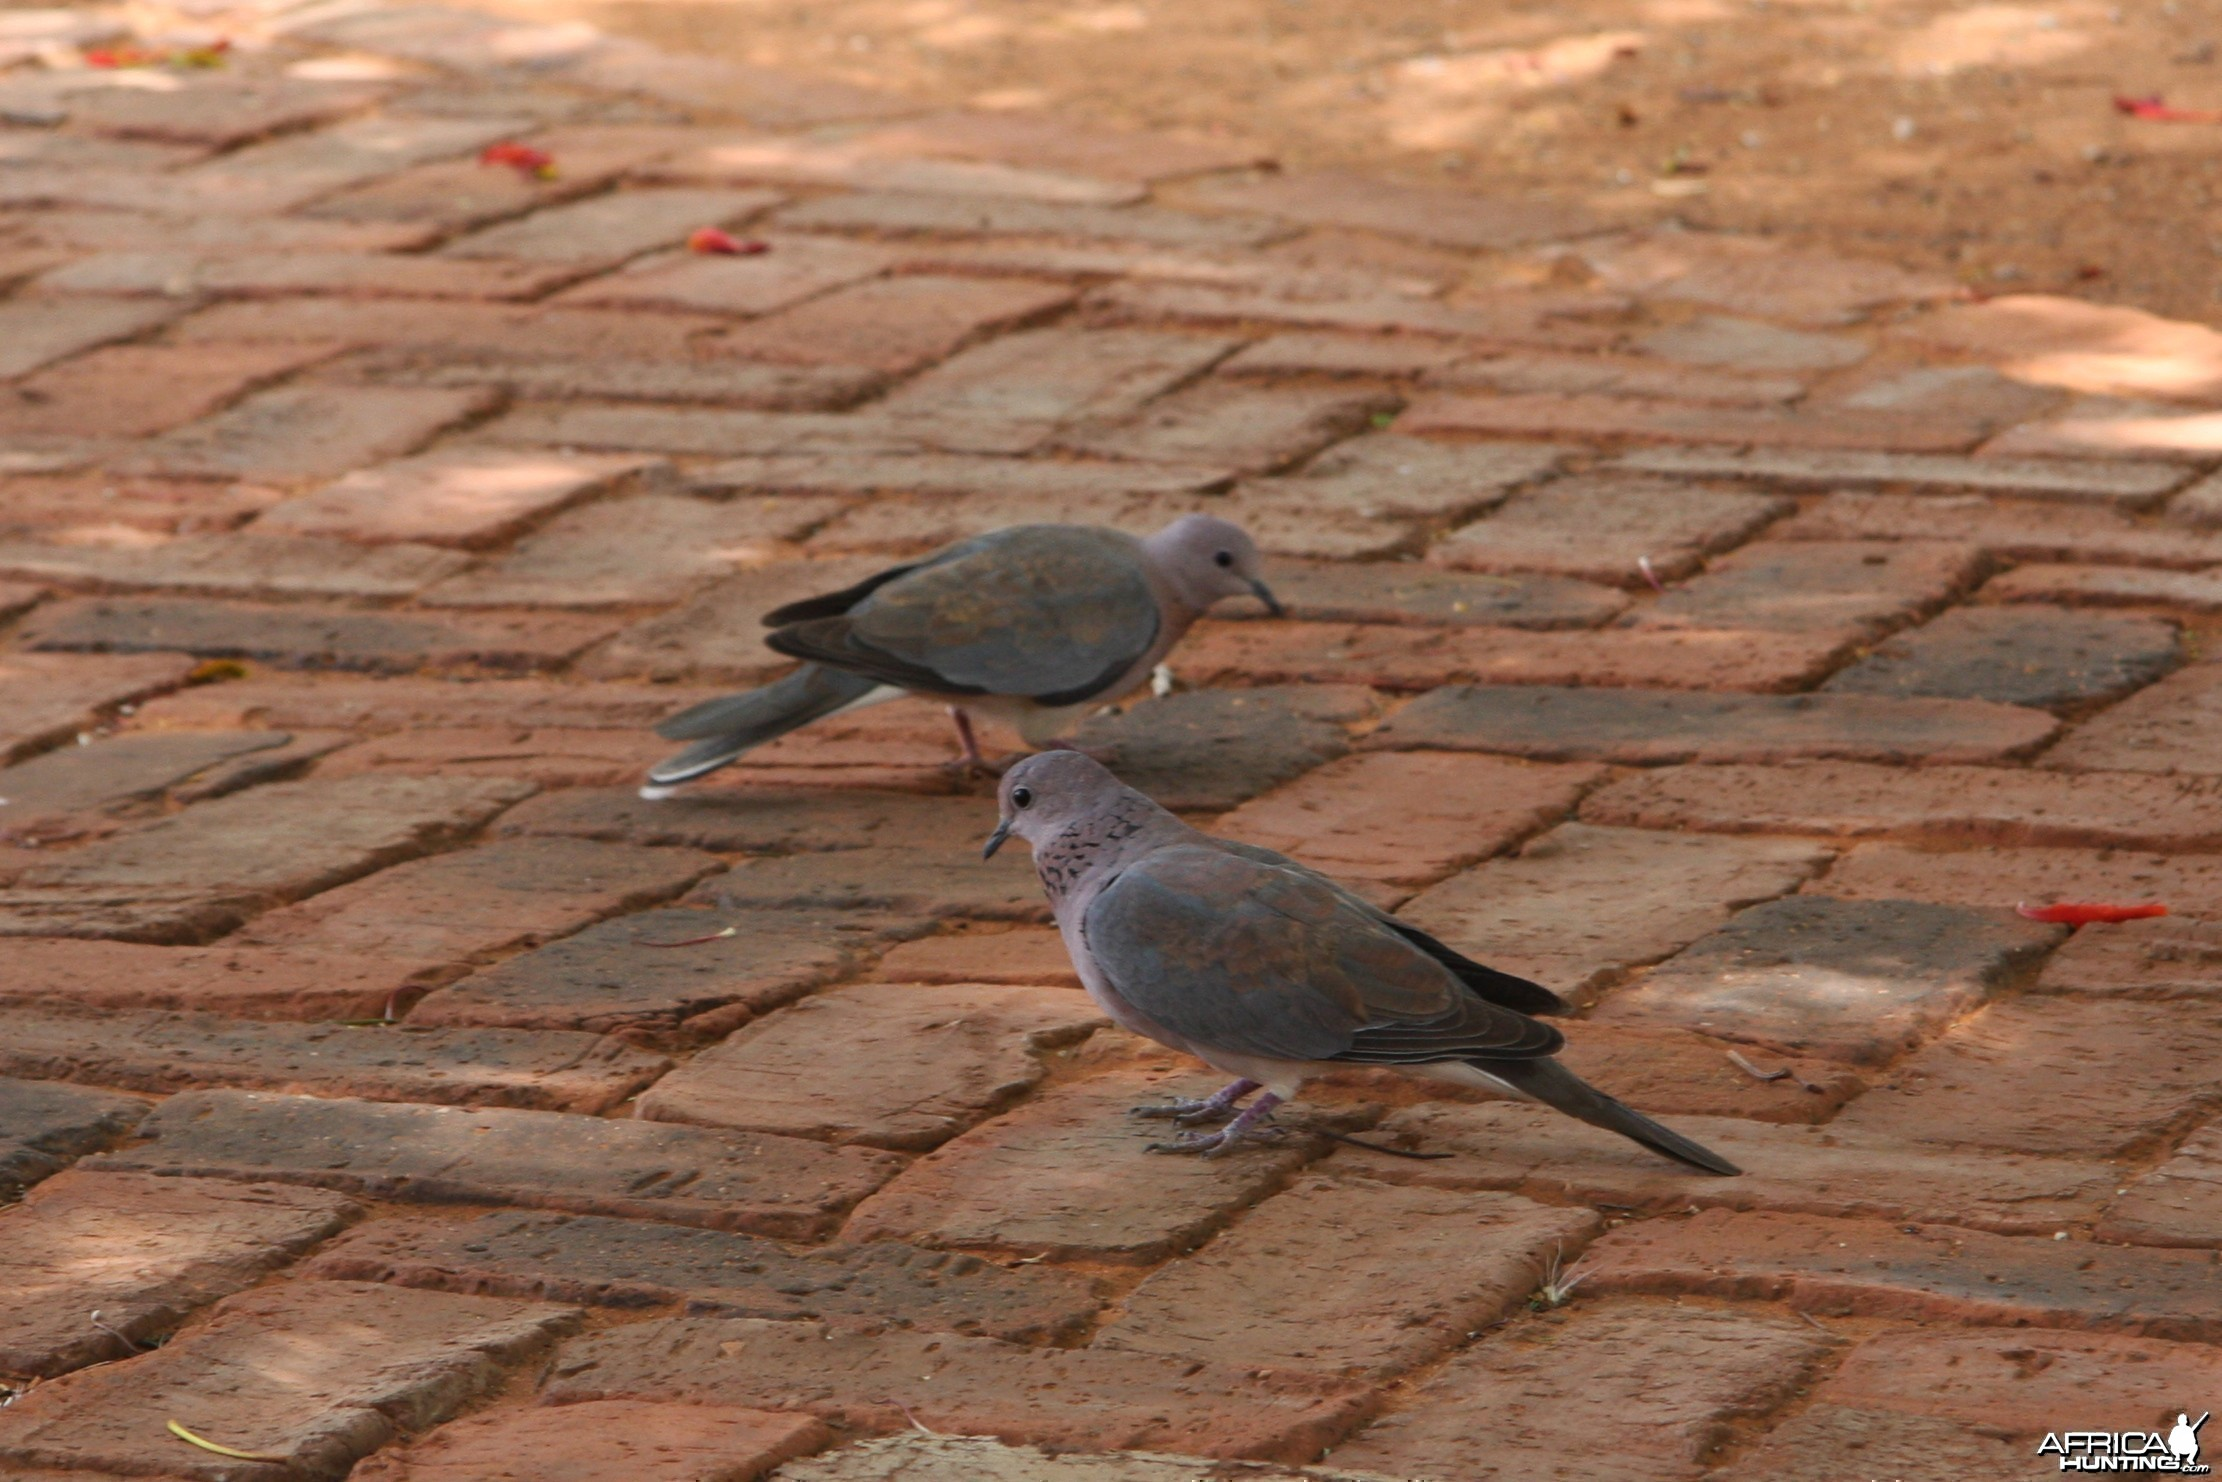 Doves Namibia